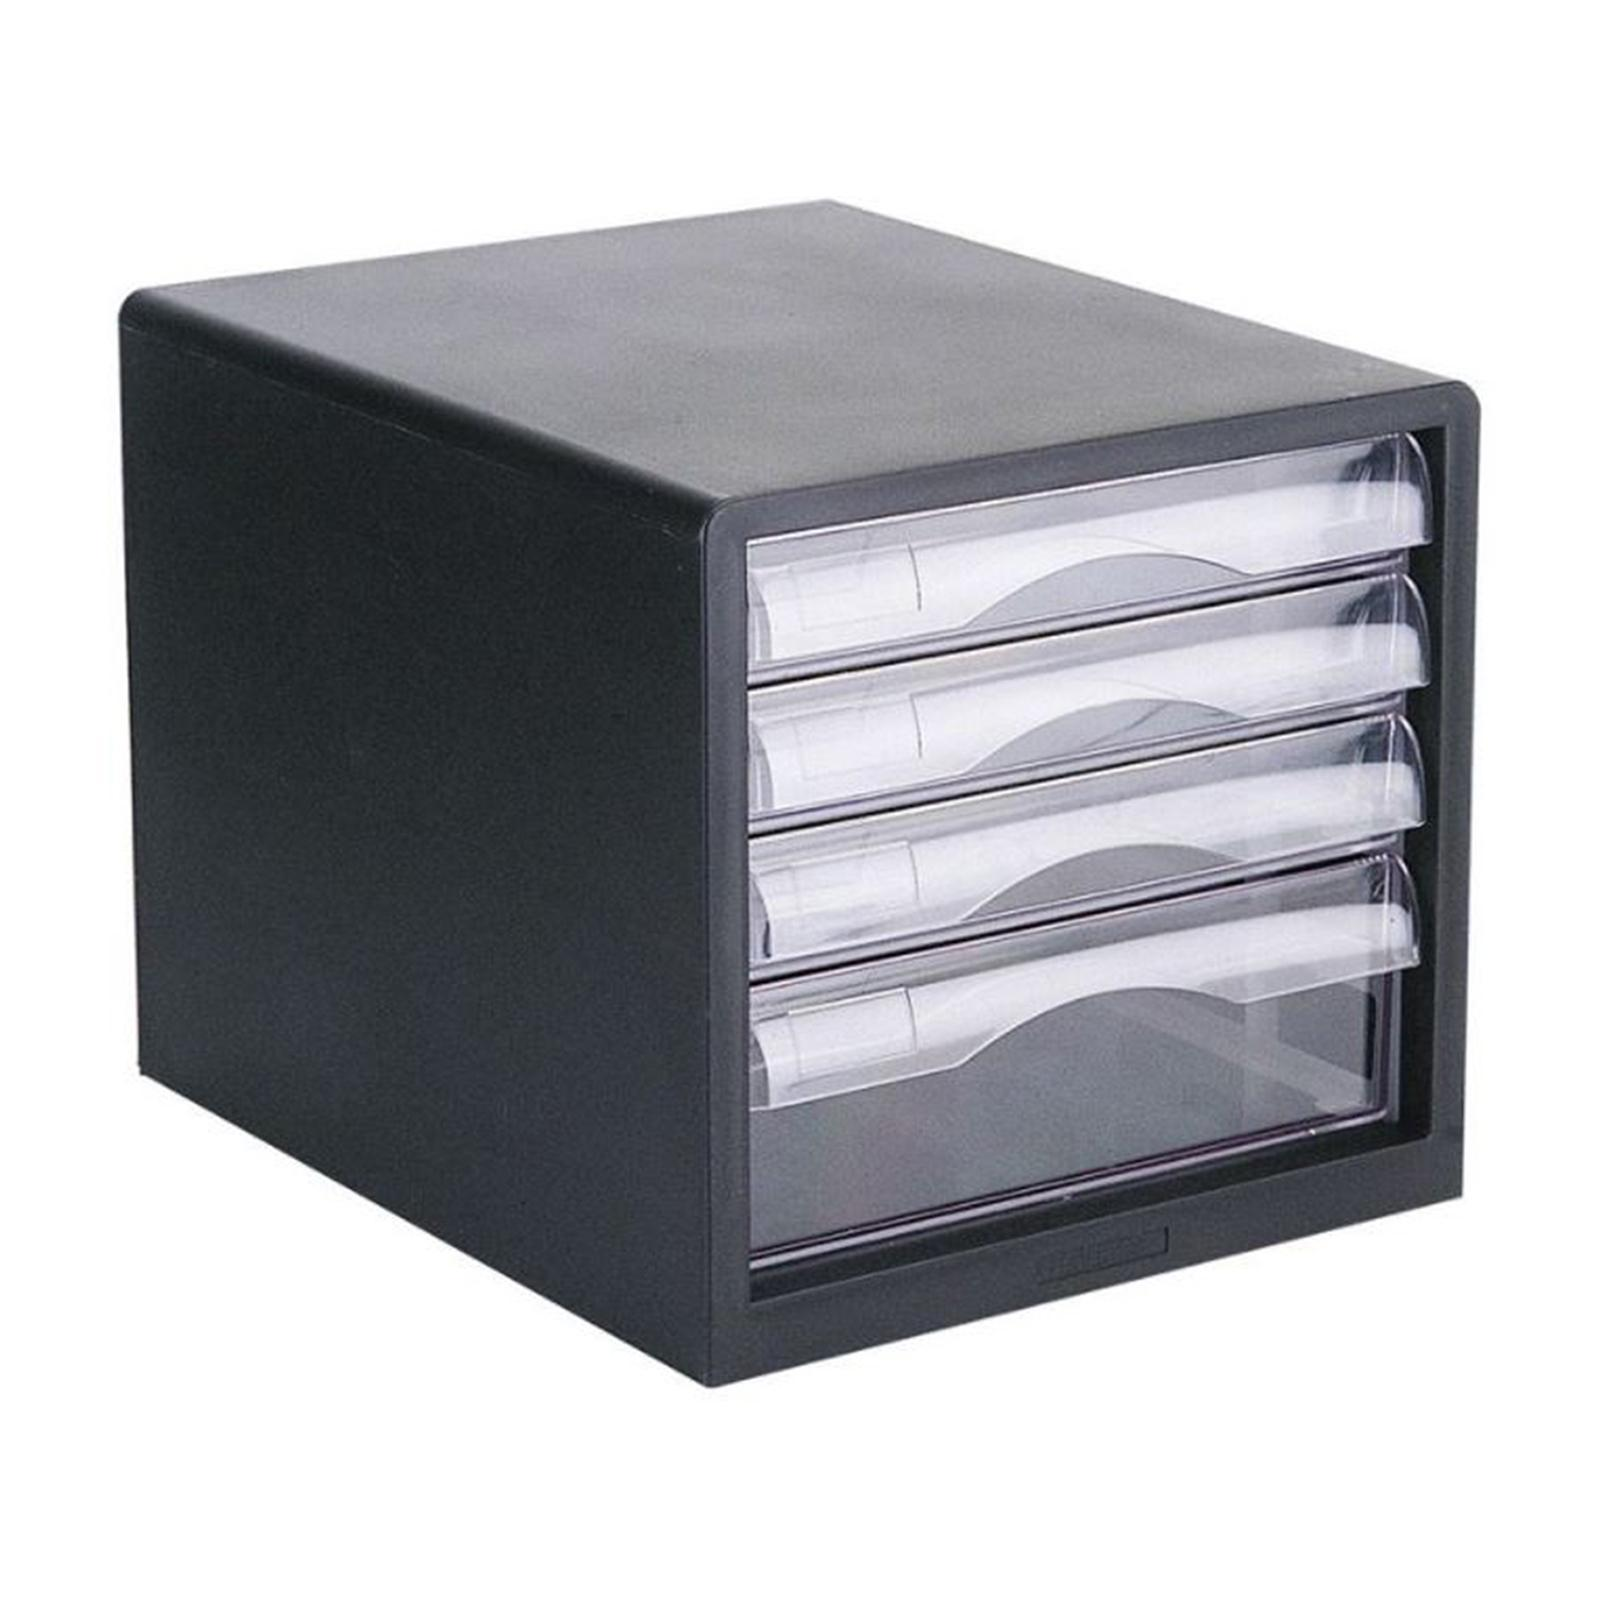 Deli 4 Drawers Letter Case E9774 - Black